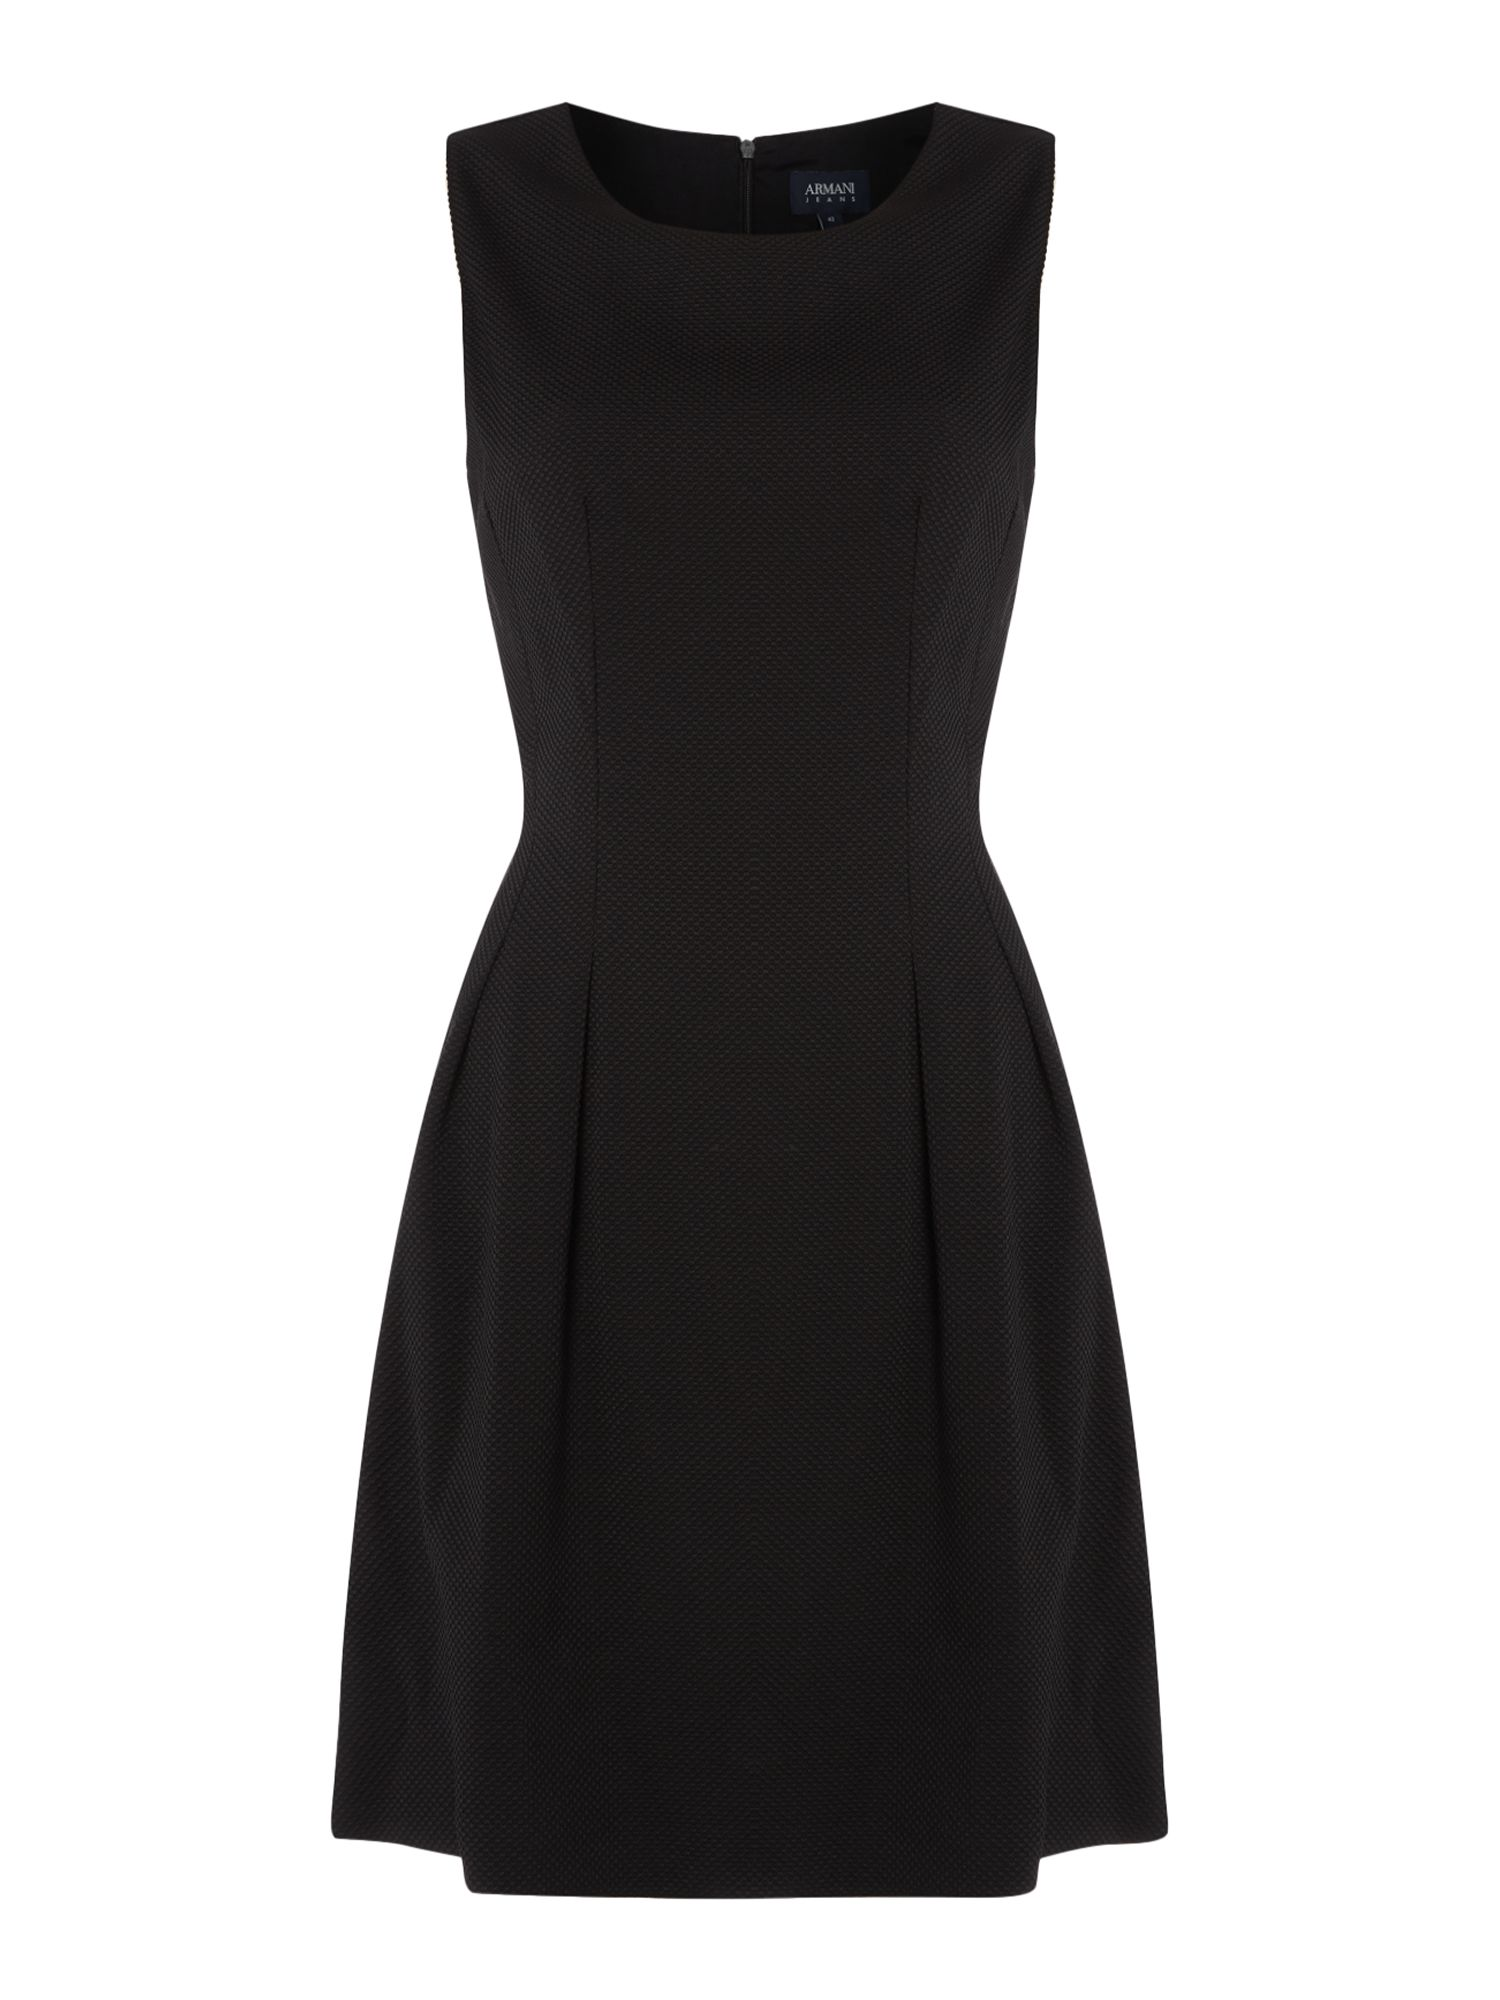 Armani Jeans Sleeveless jacquard dress in nero, Black